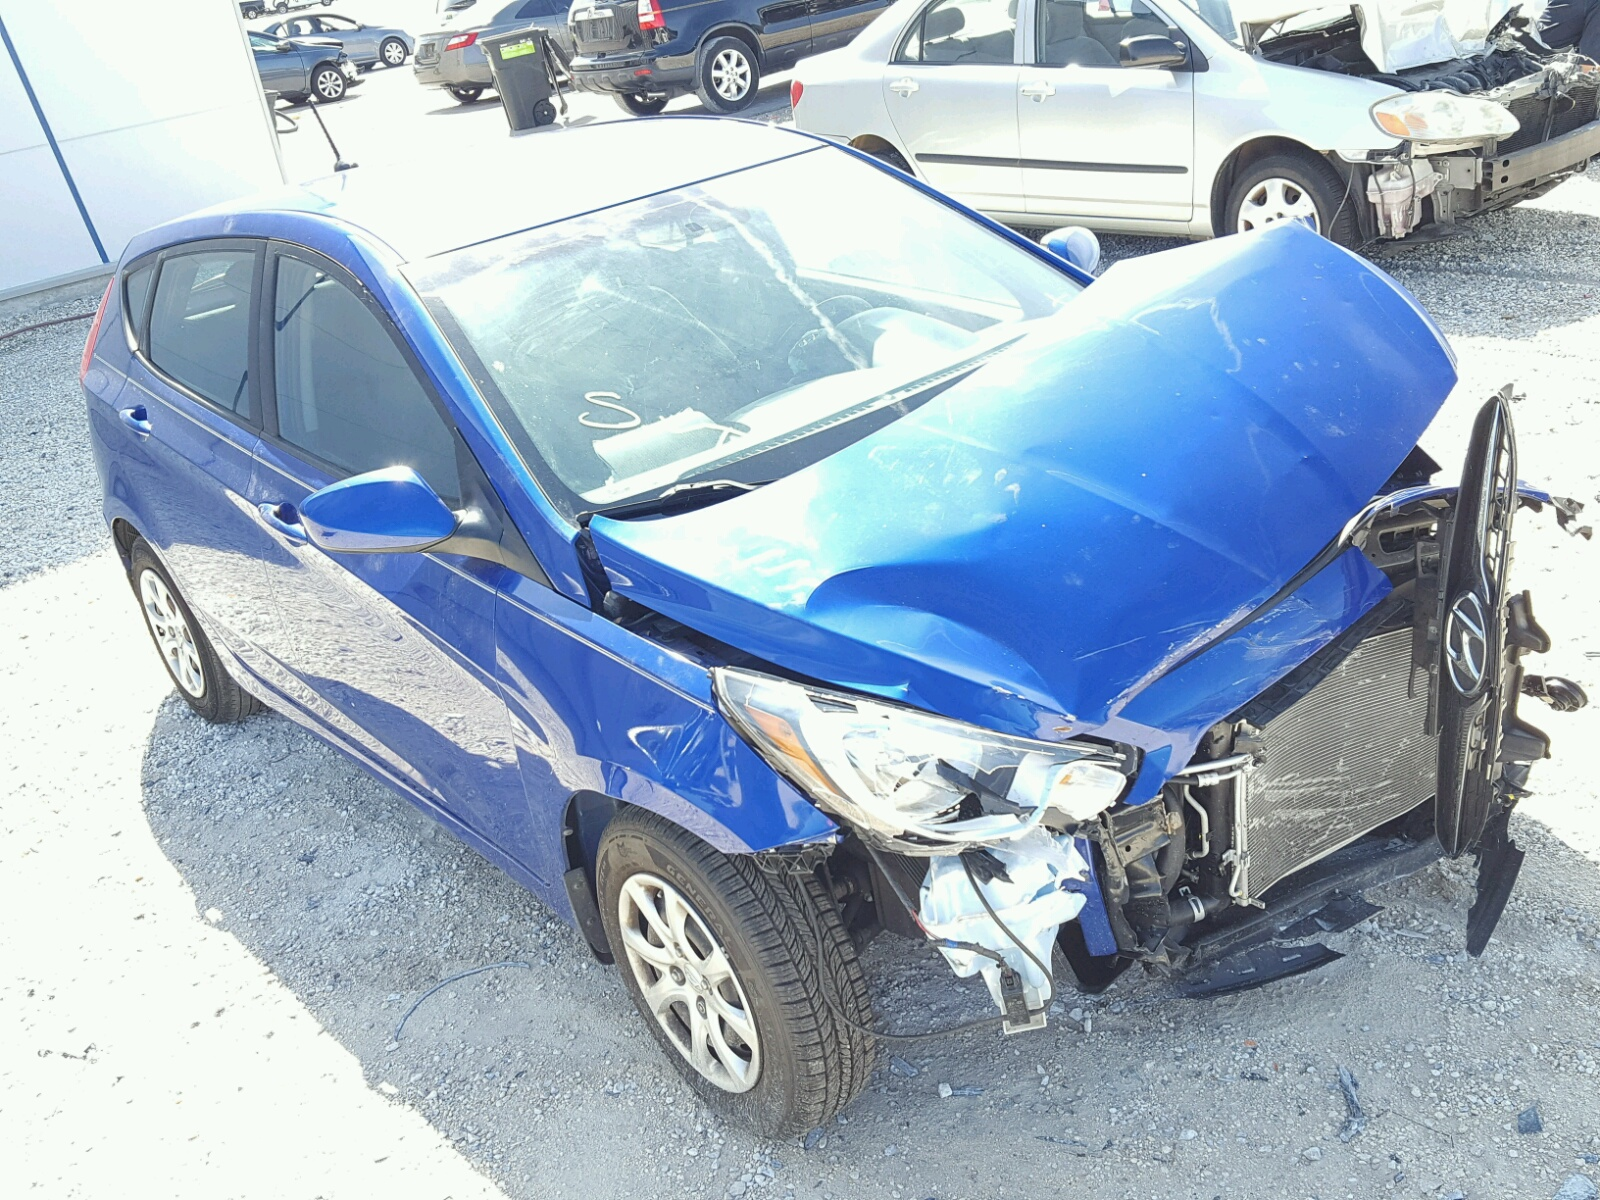 fbdf greer sc en up carfinder salvage title lot view close auctions cert sonata sale of hyundai on silver auto gls copart online in